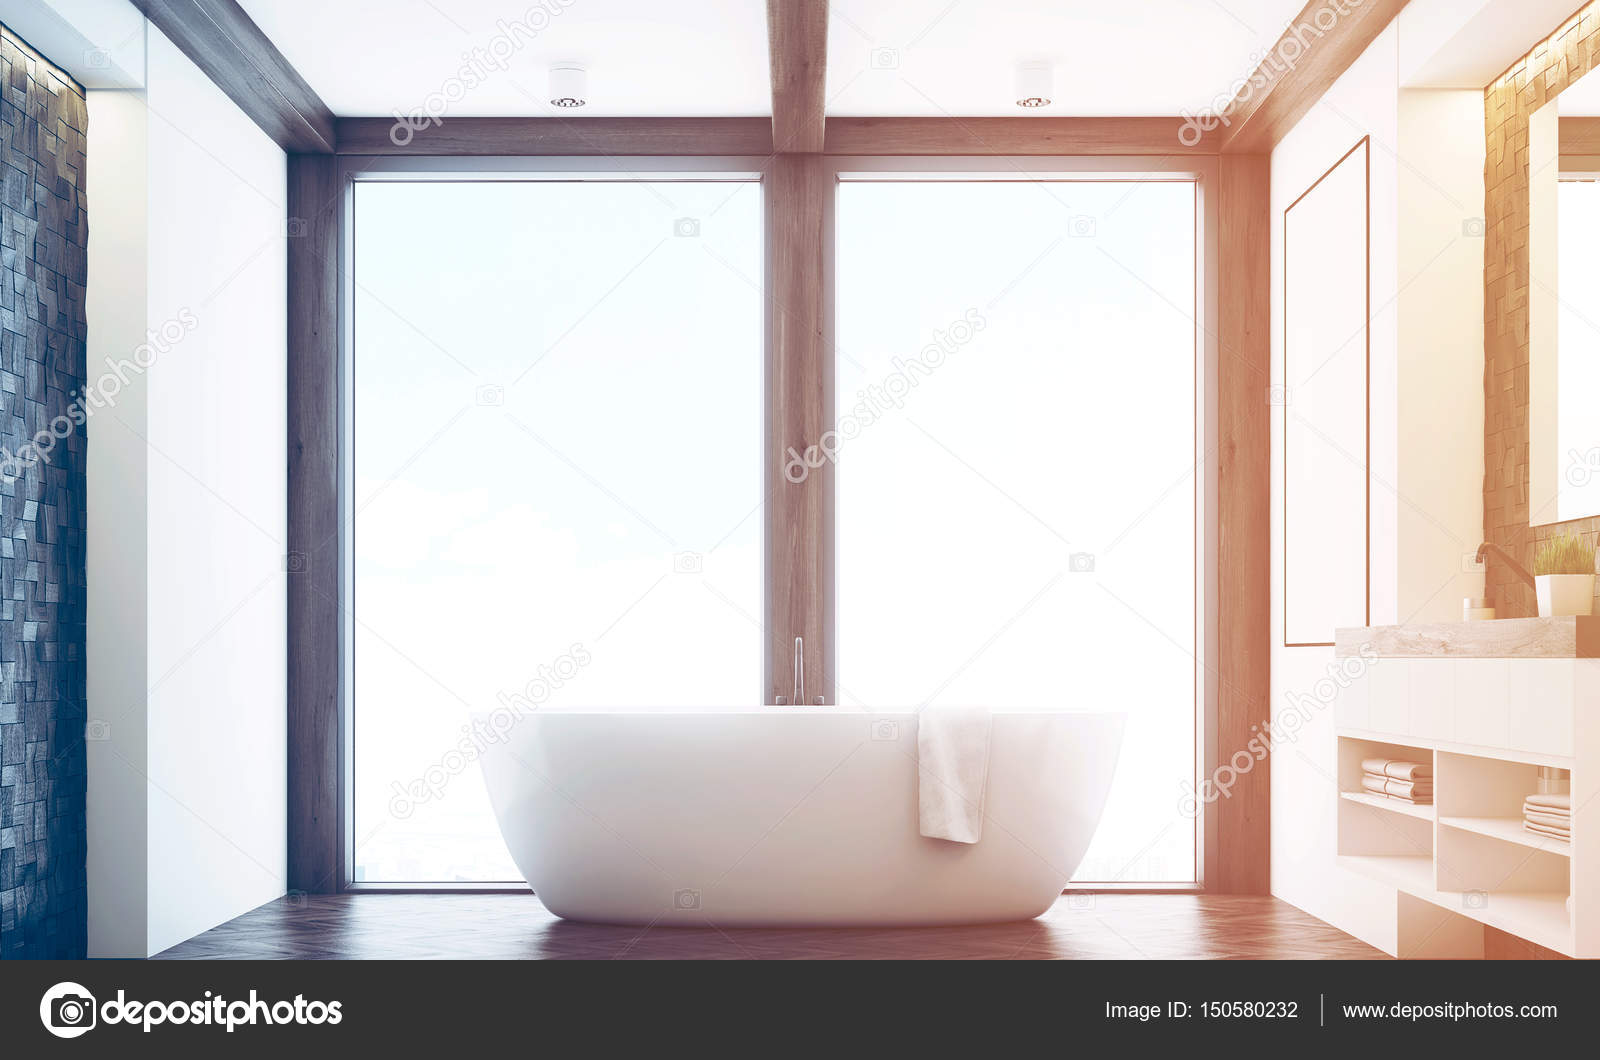 Bagno in piastrelle scure finestra tonica u foto stock